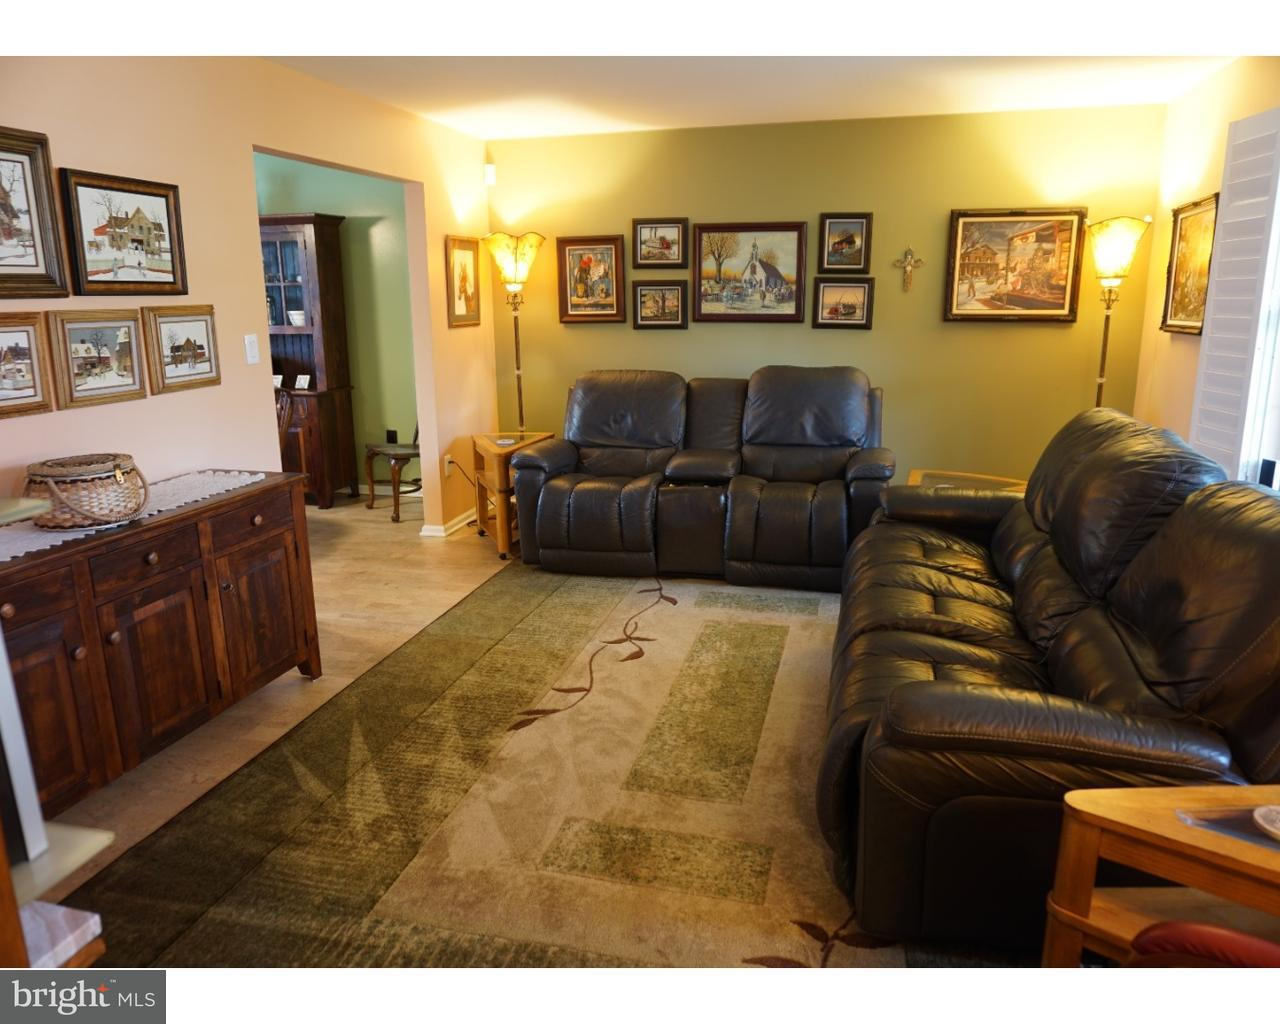 47 LYNWOOD DR, CHALFONT - Listed at $447,900, CHALFONT